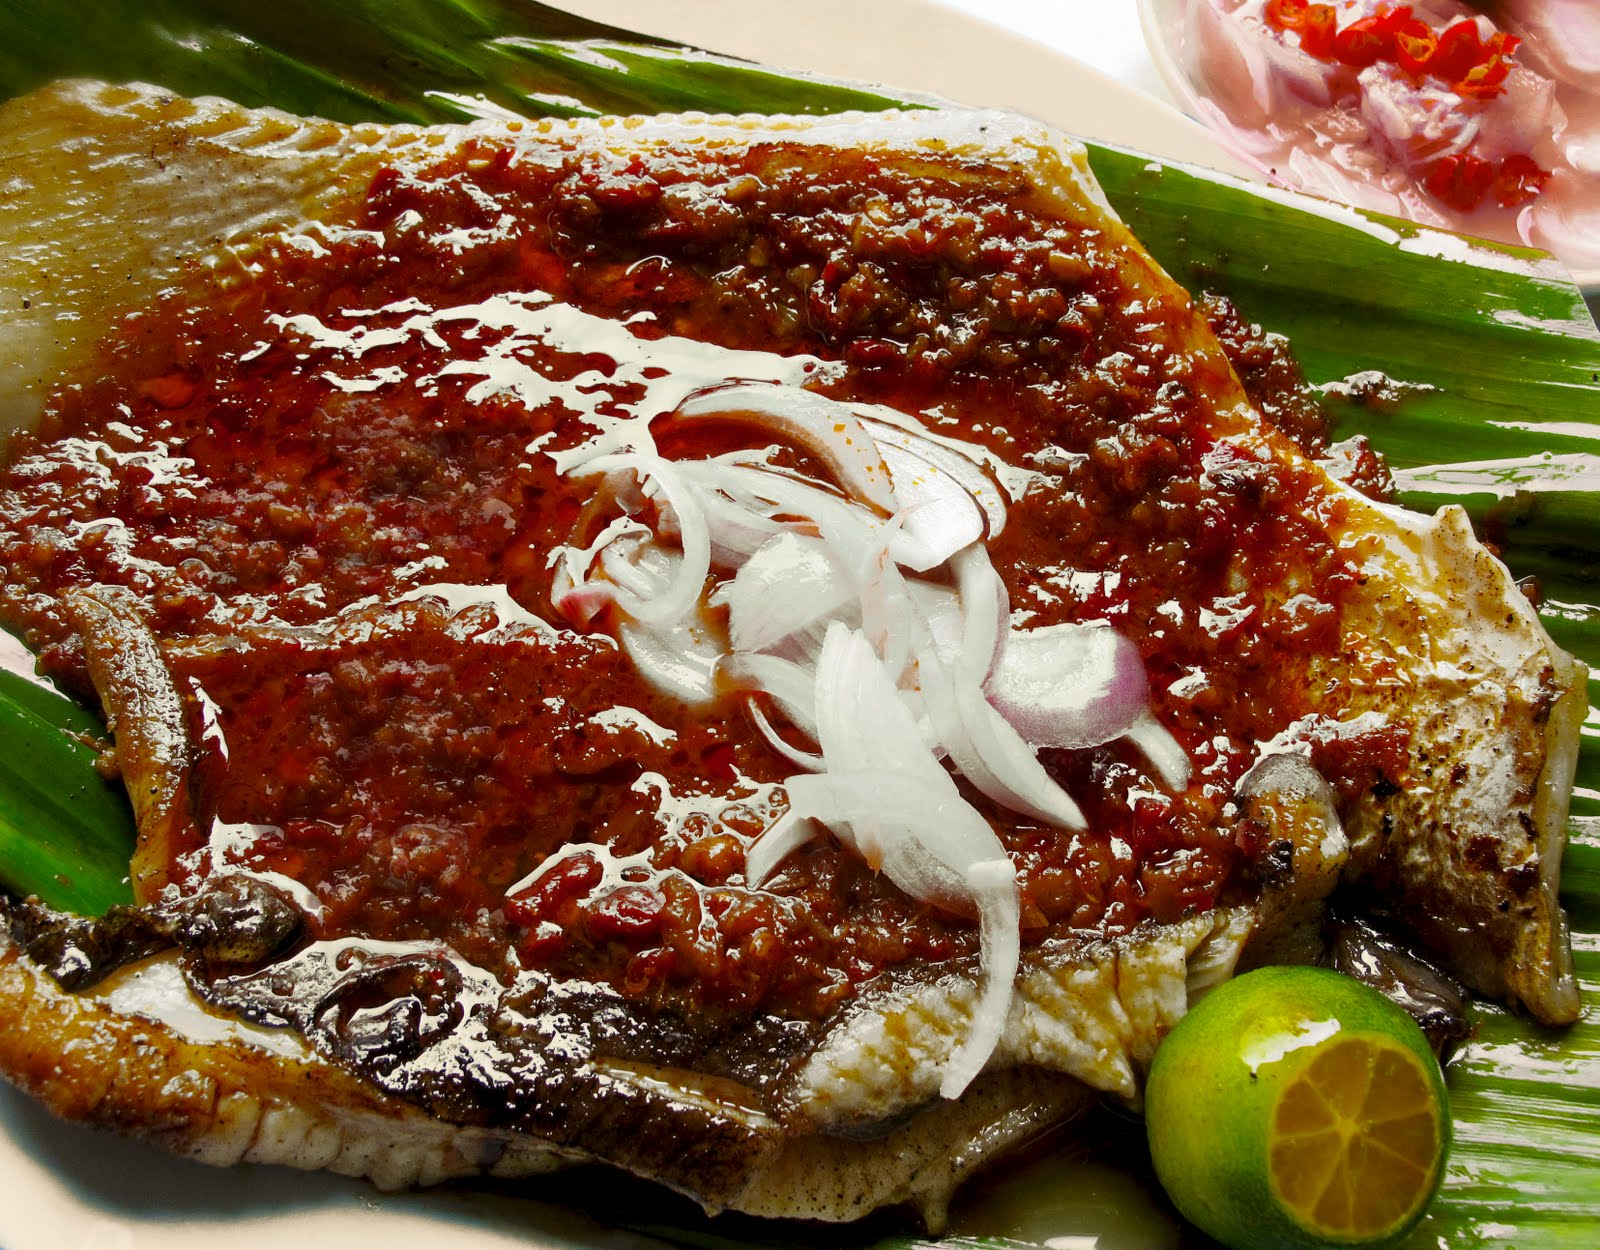 ... grilled whole in a similar way, on banana leaves with sambal chilli